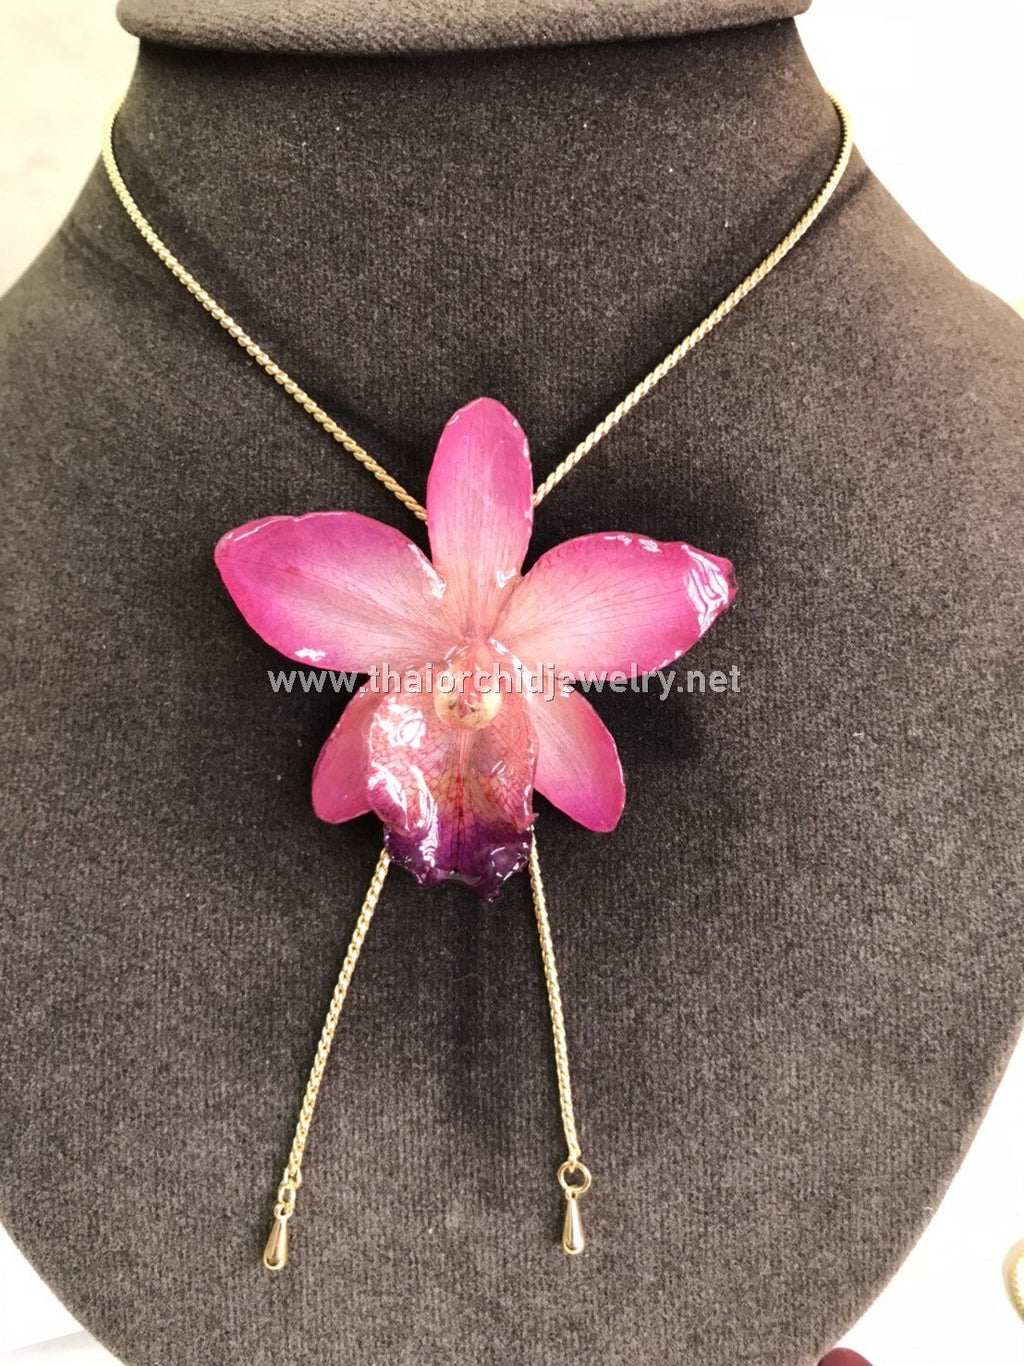 Cattleya Orchid Jewelry Slider Necklace Gold Plated 24K - PINK